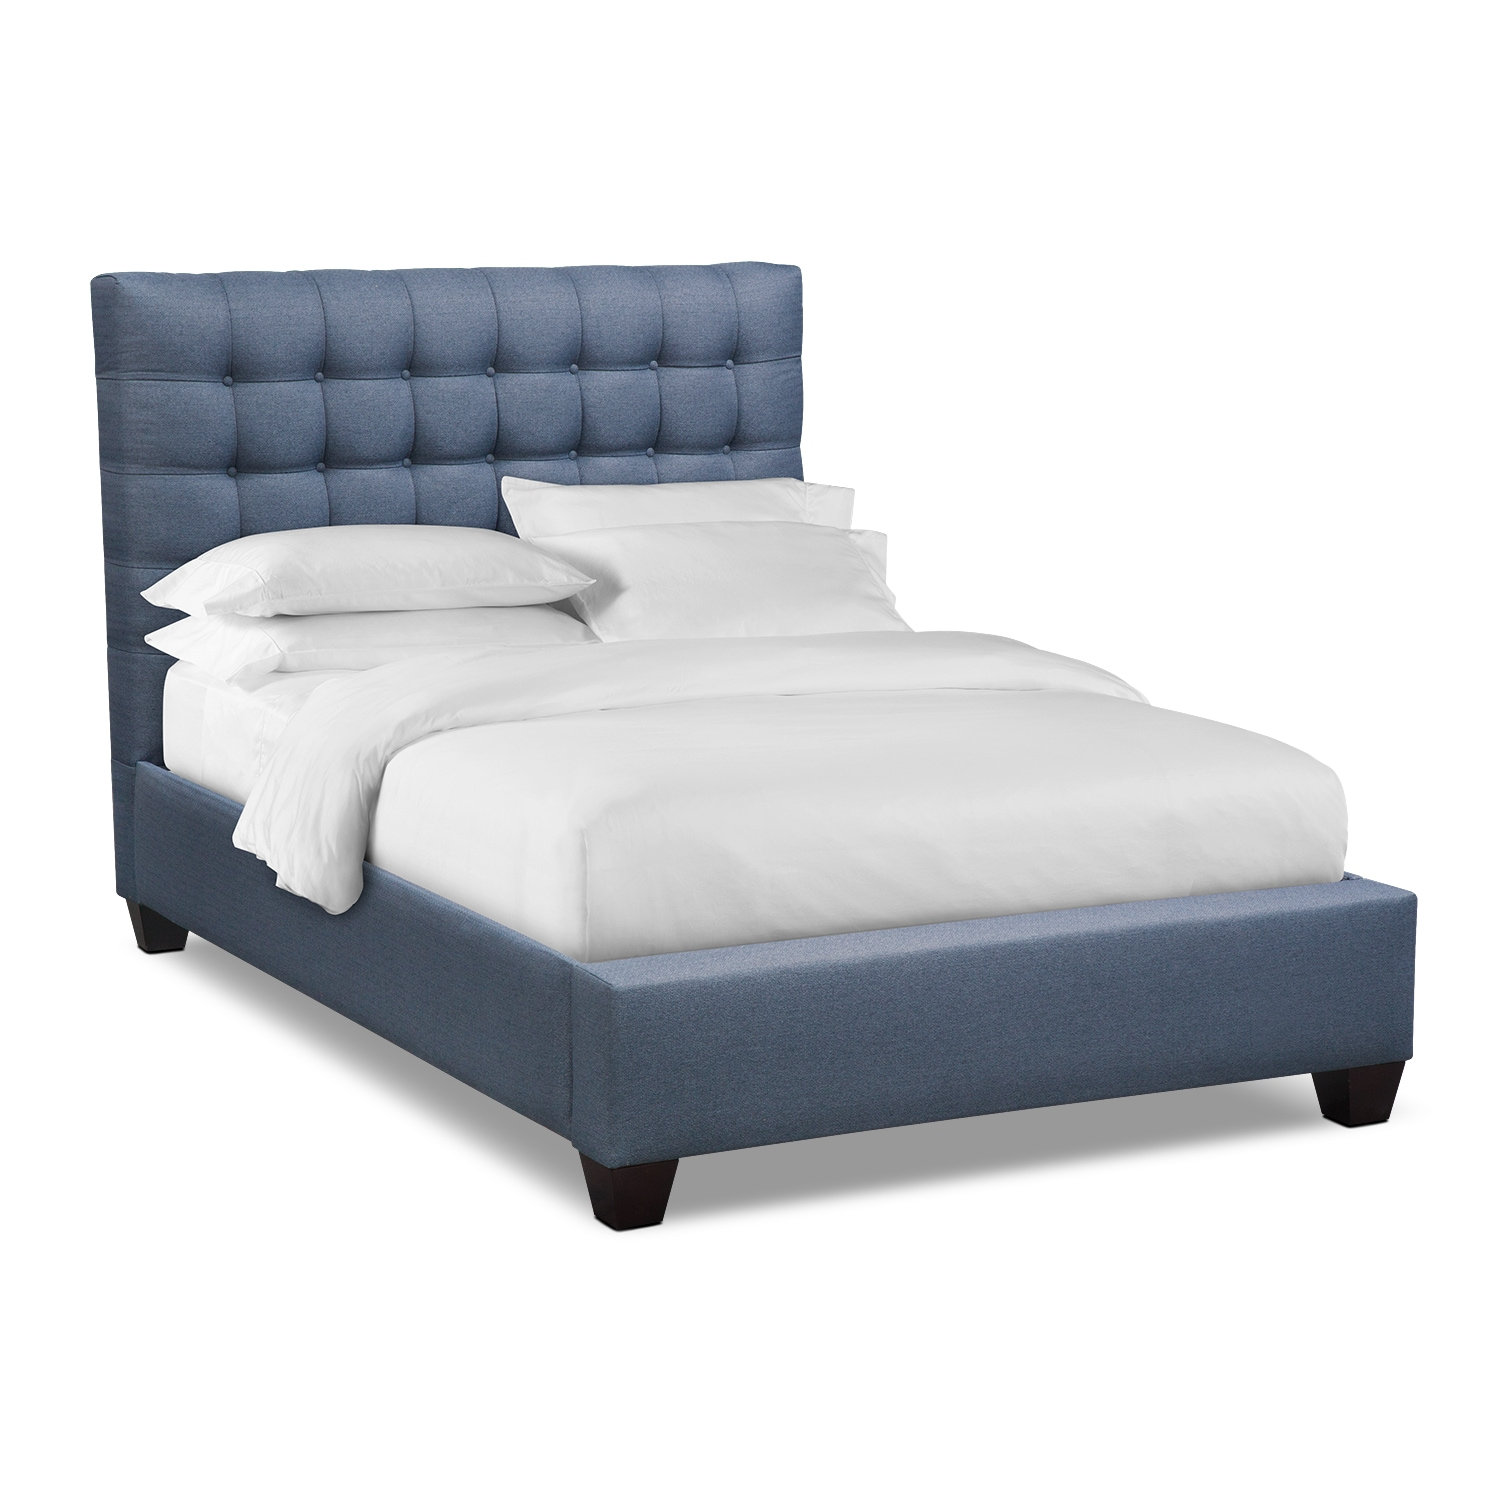 Kylie Queen Upholstered Bed - Blue